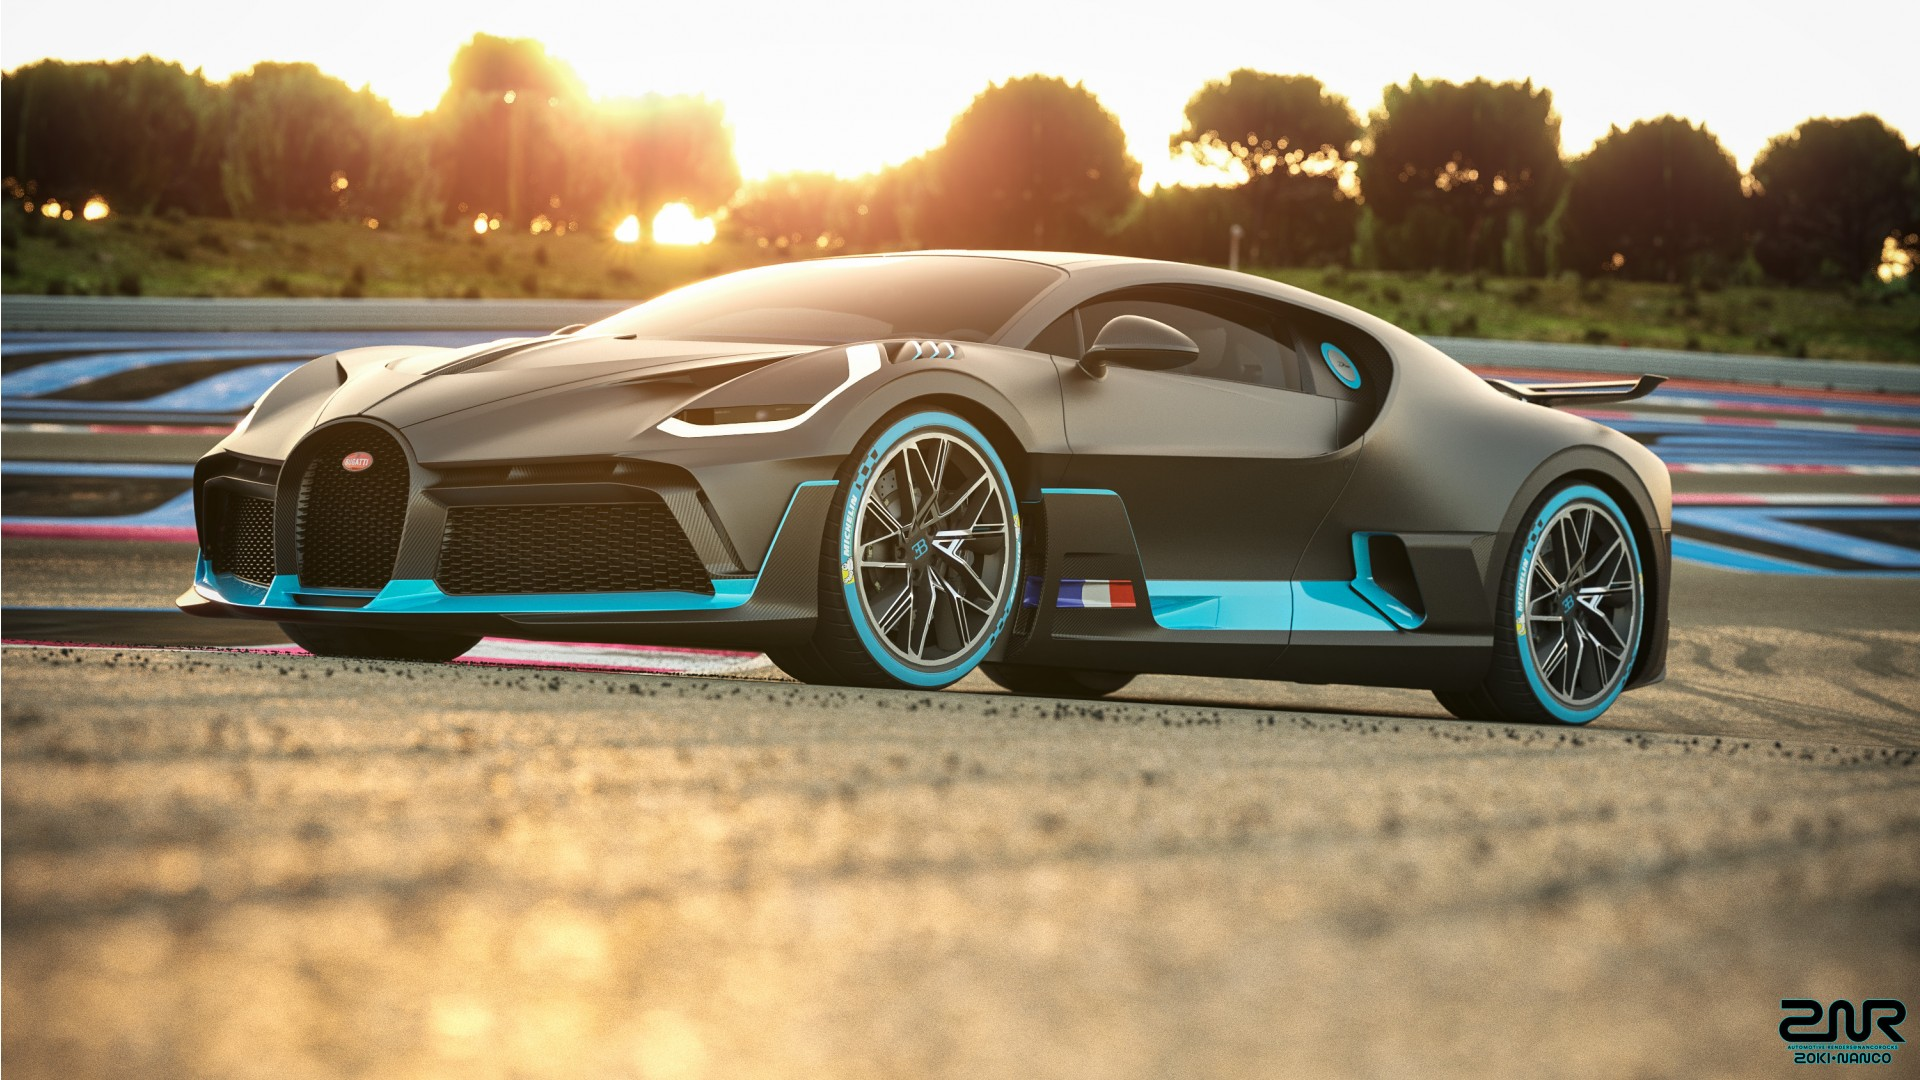 Bugatti Veyron Wallpapers Images Photos Pictures Backgrounds